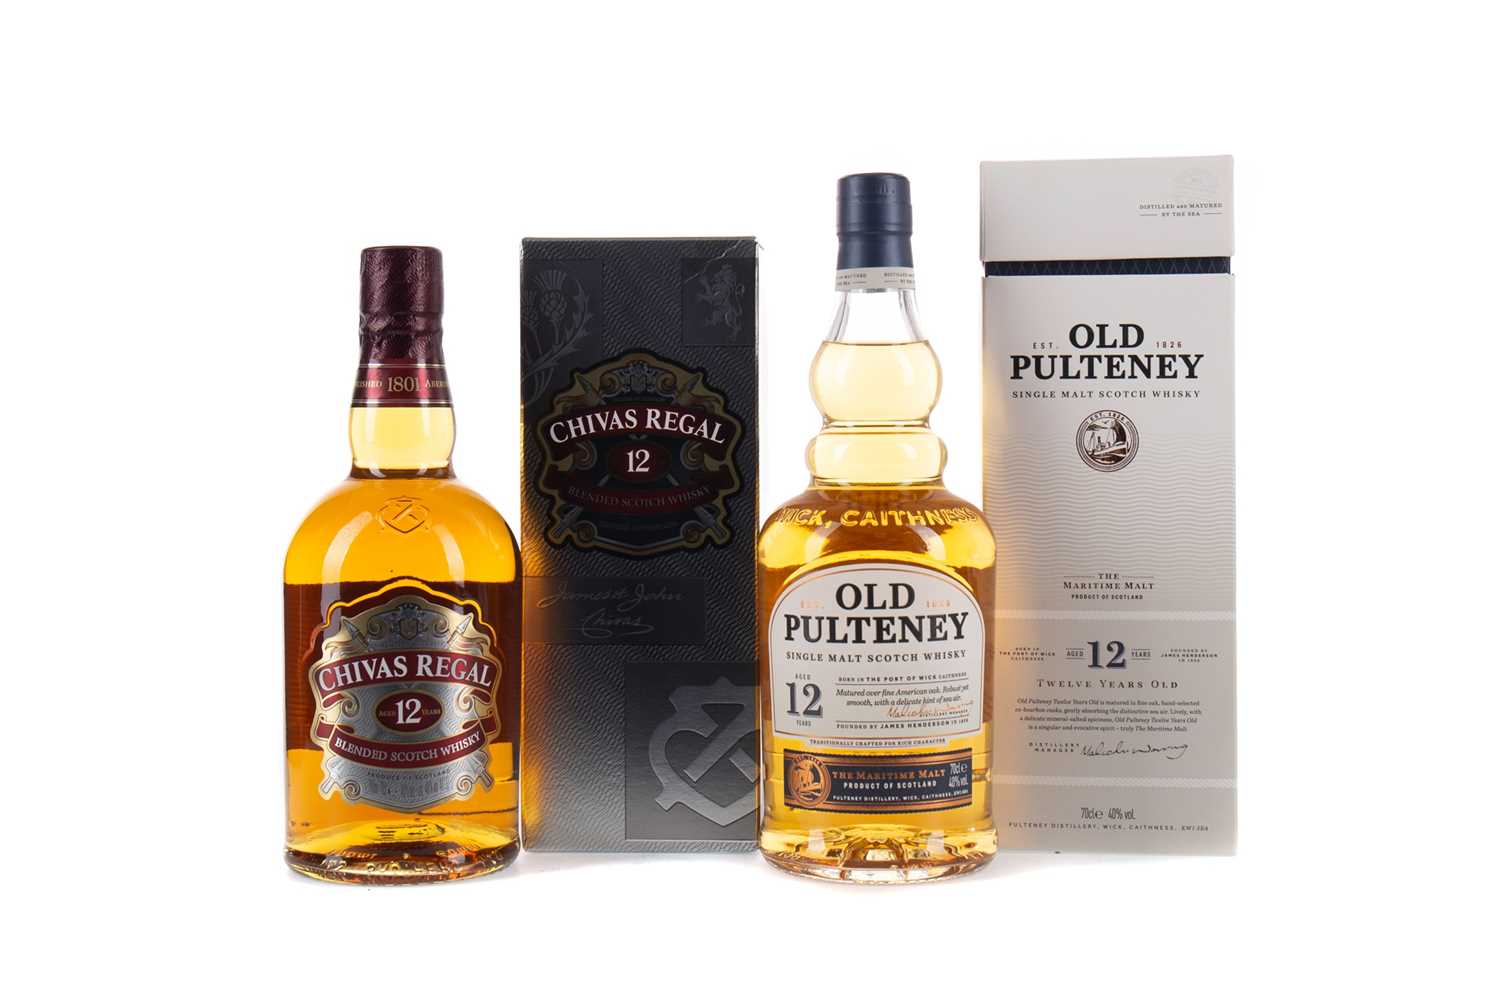 Lot 41 - OLD PULTENEY AGED 12 YEARS, AND CHIVAS REGAL AGED 12 YEARS